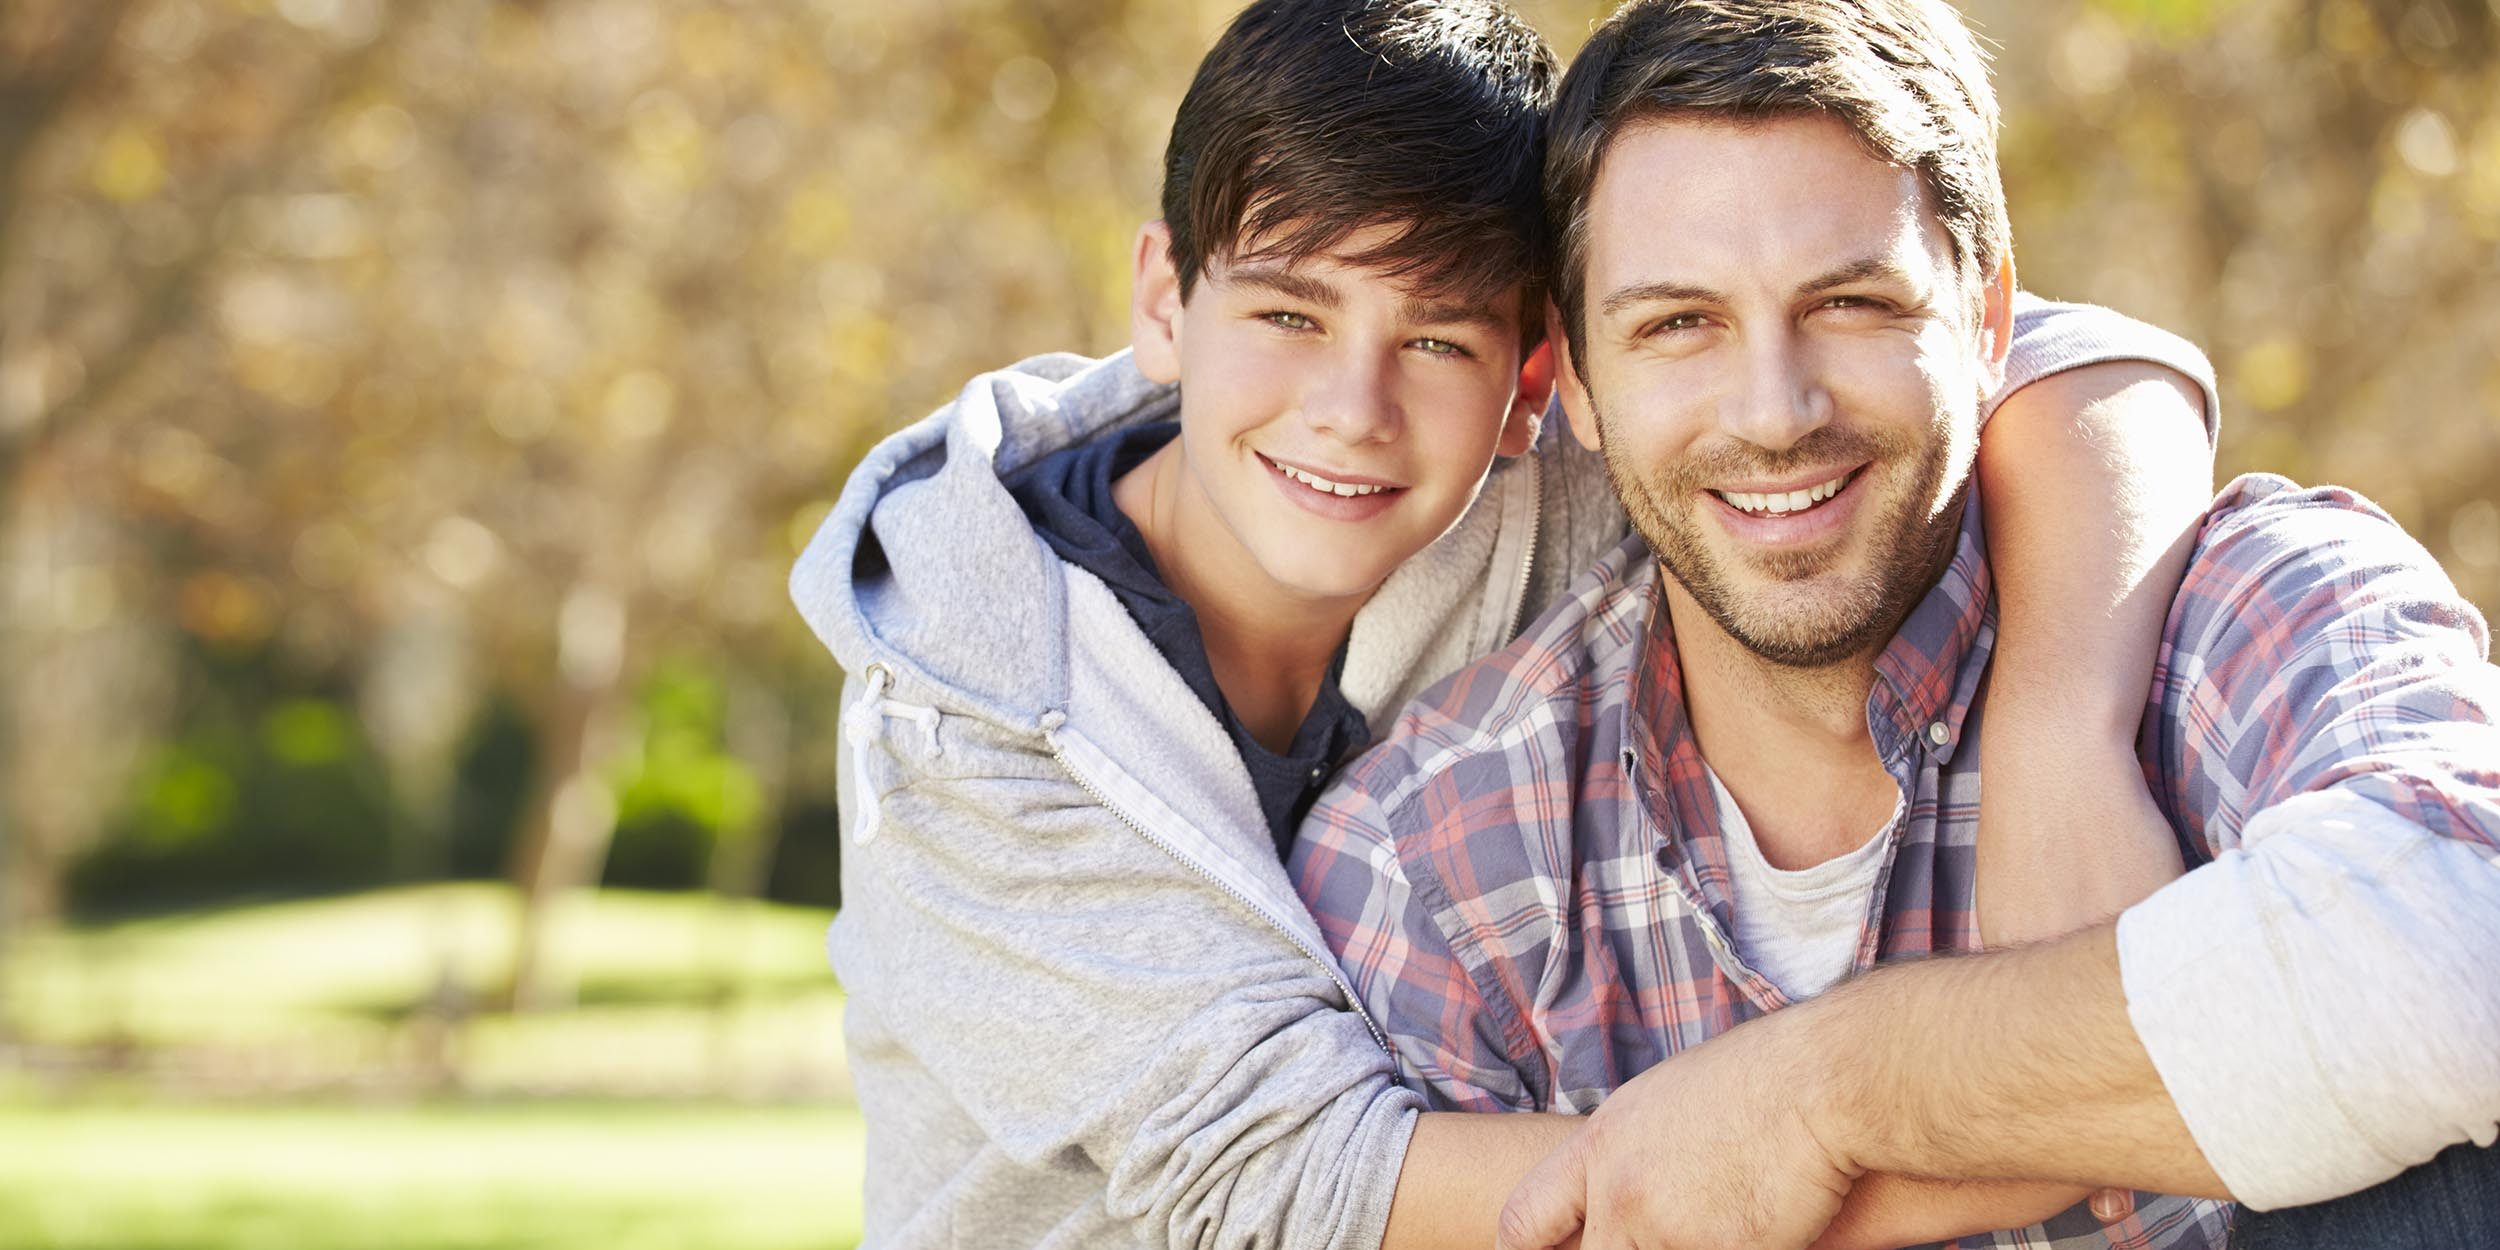 Portrait Of Father And Son In Countryside